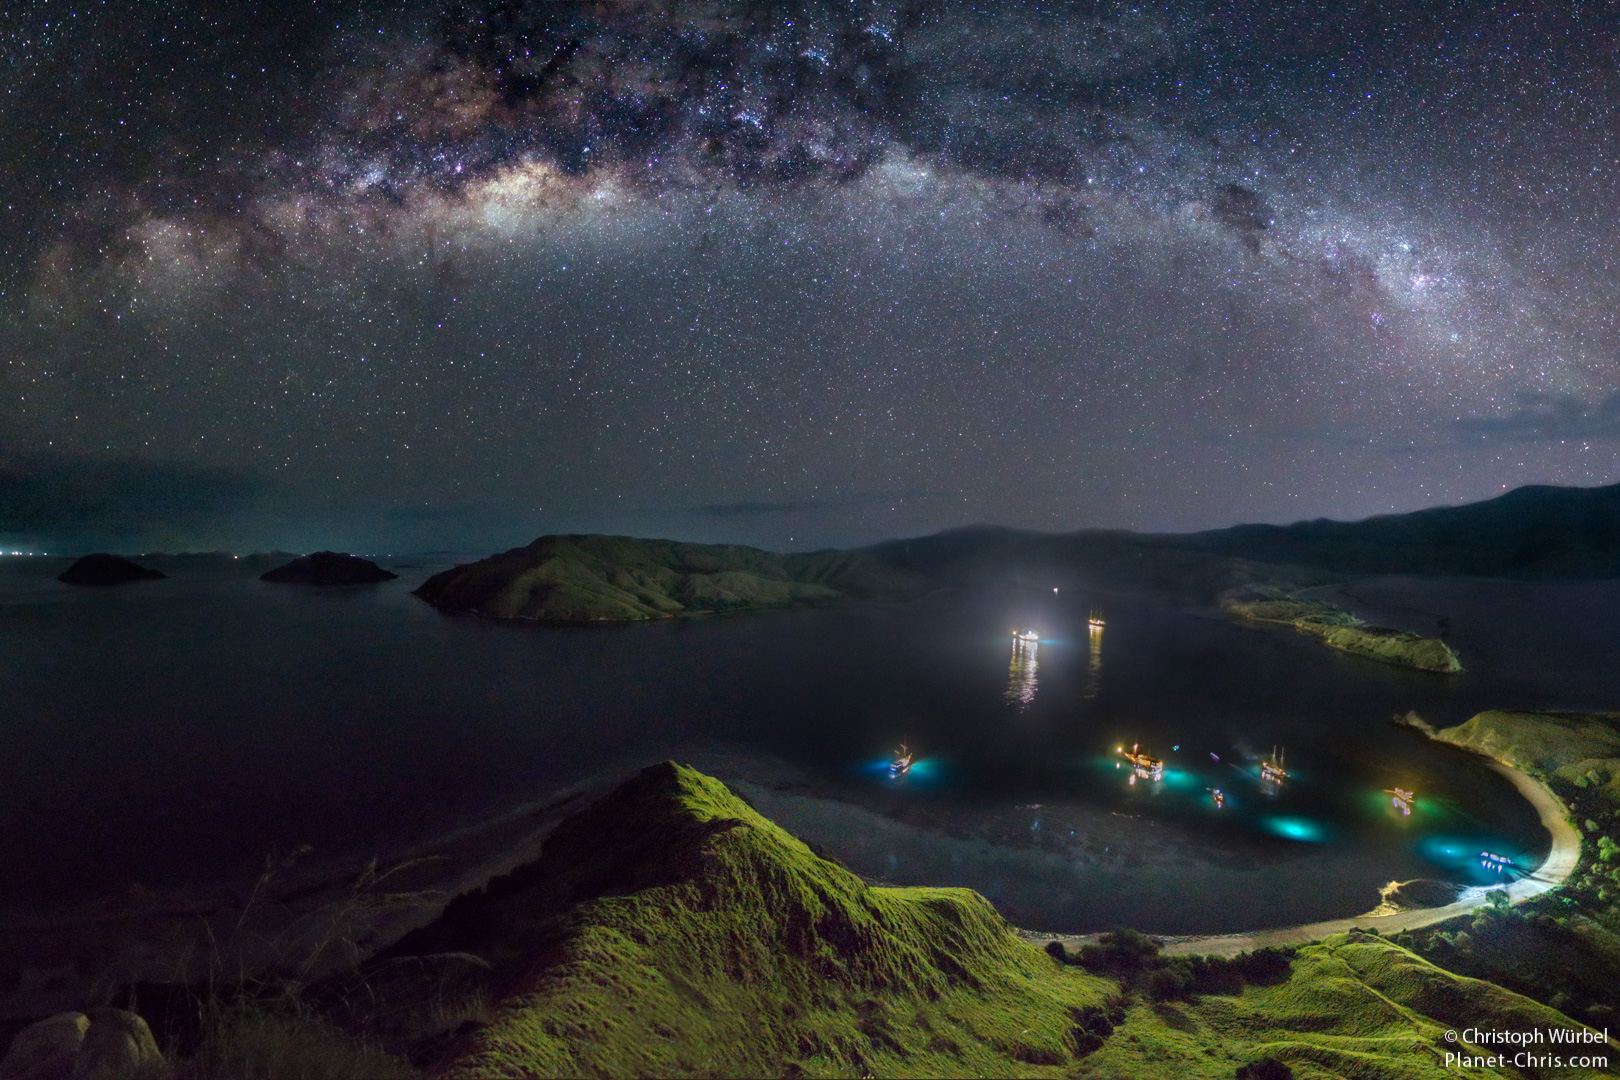 Lamps of divers in the water, the milky way above the waters of Komodo National Park, Indonesia